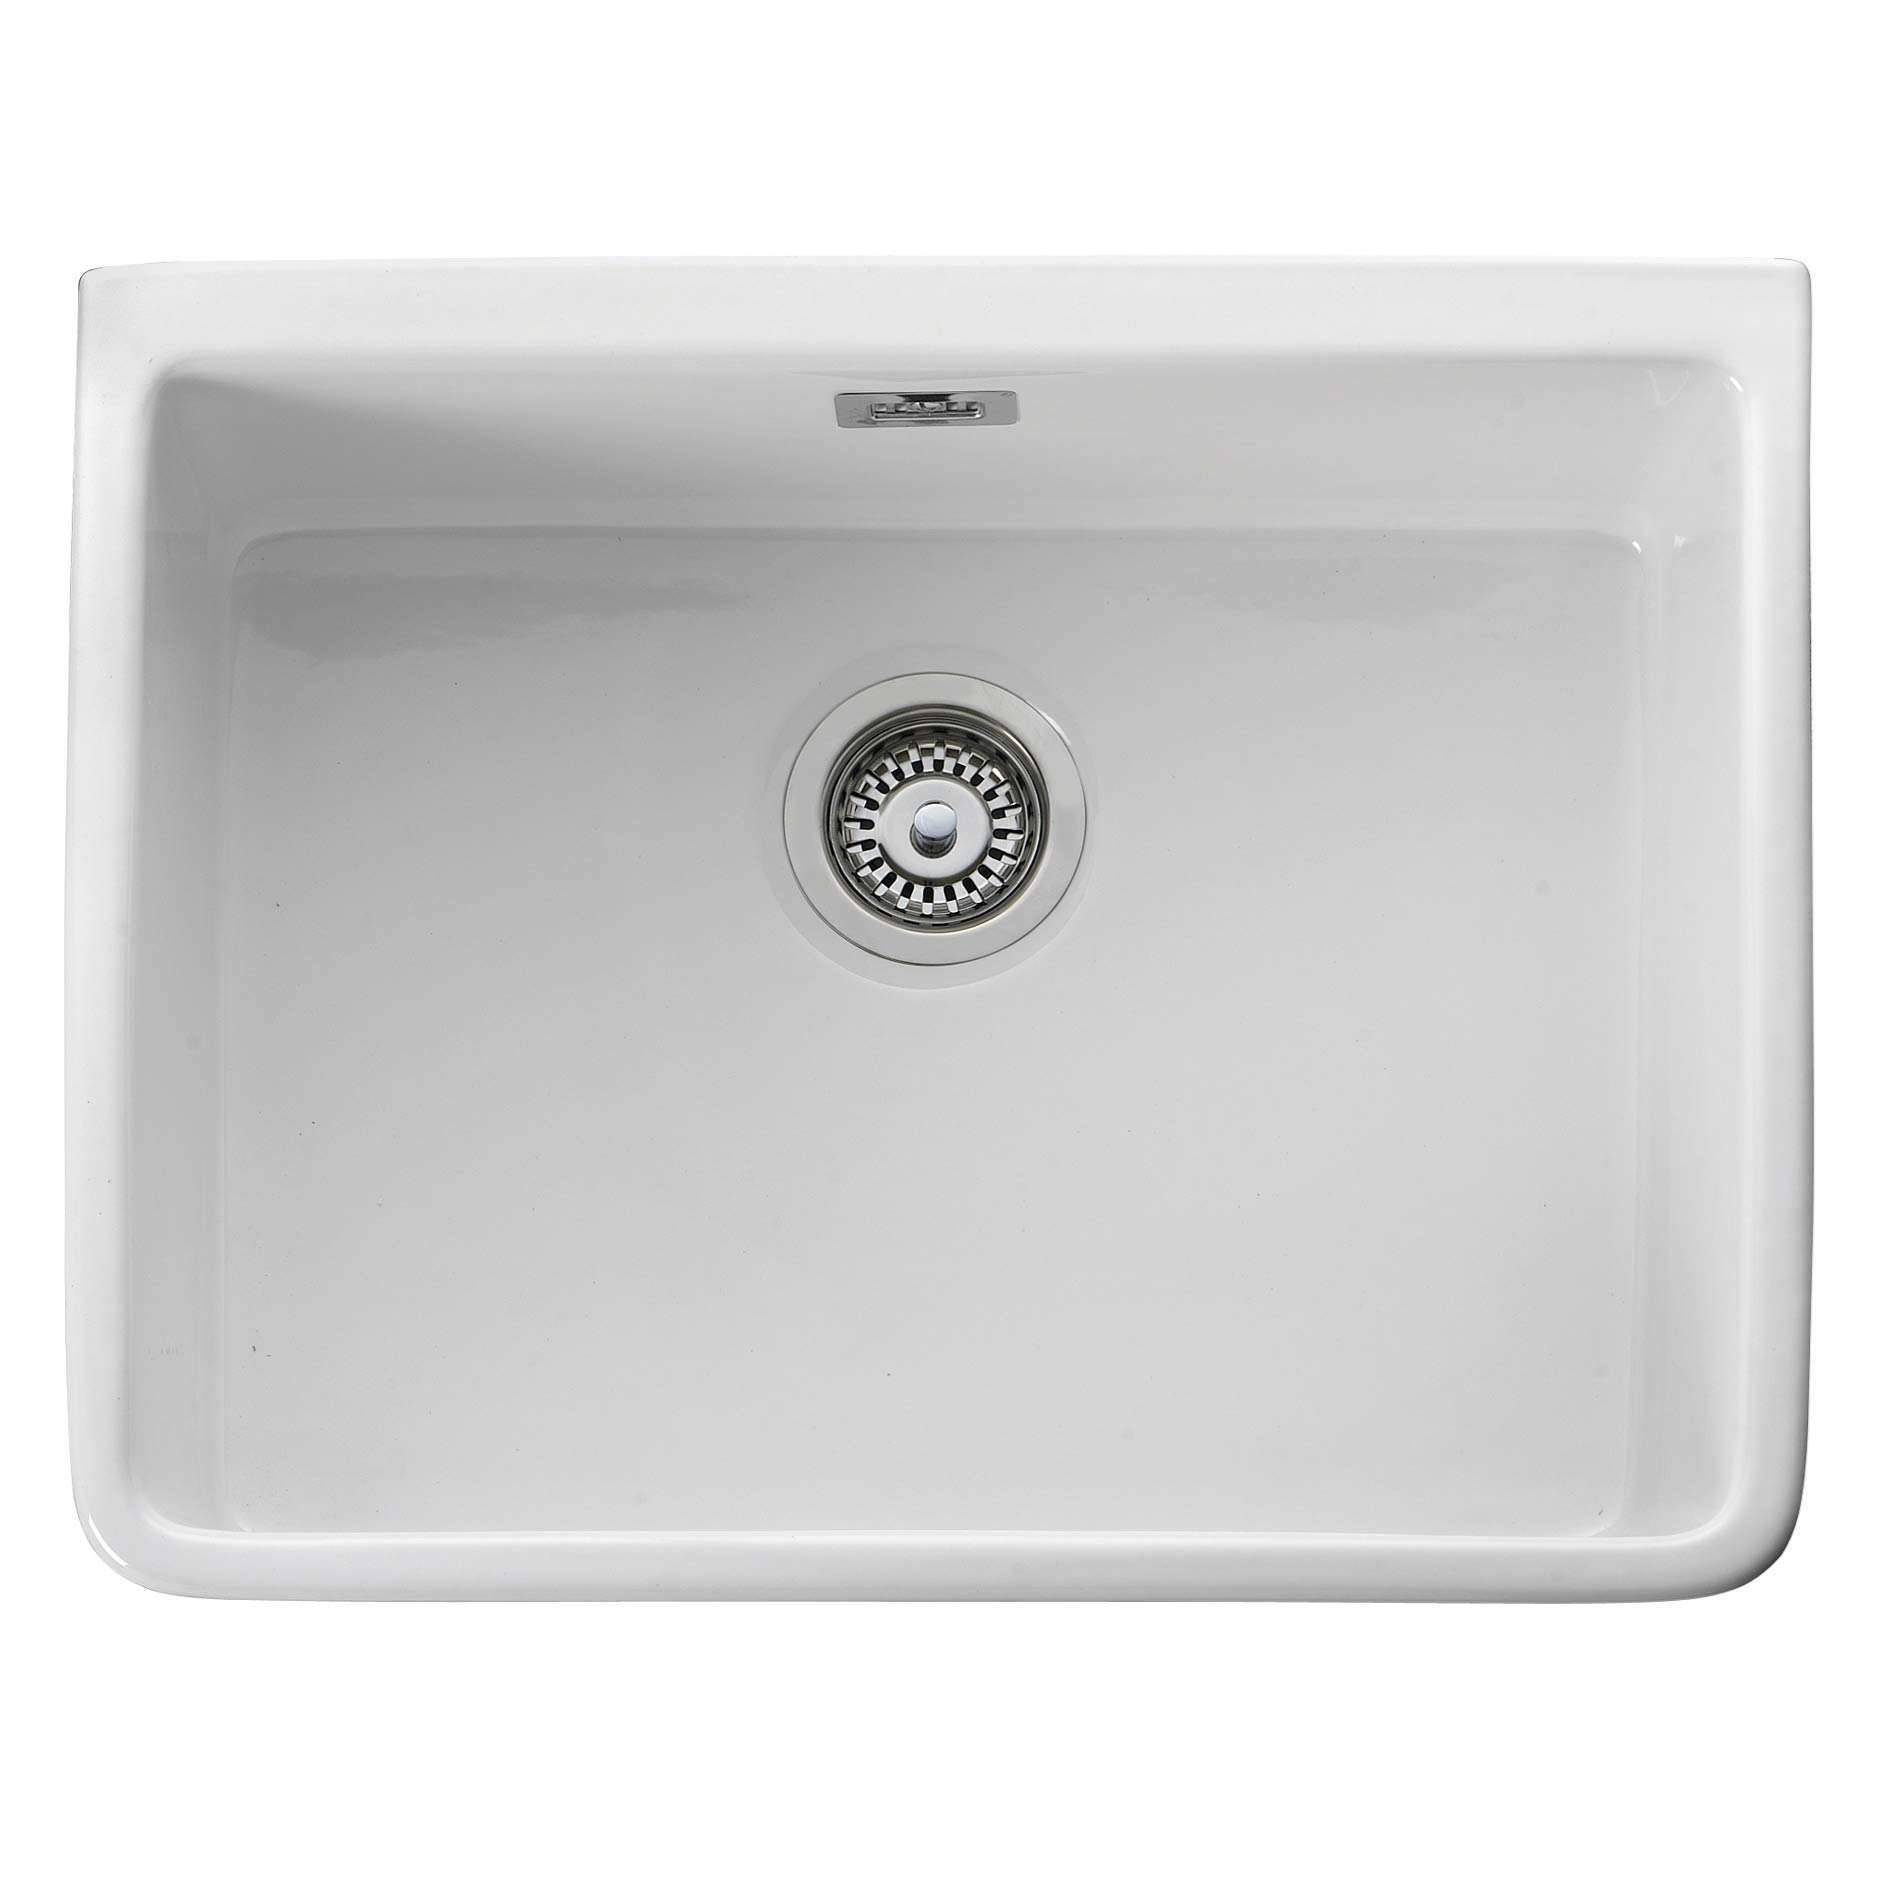 Leisure Belfast Cbl595wh Ceramic Single Bowl Sink Kitchen Sinks